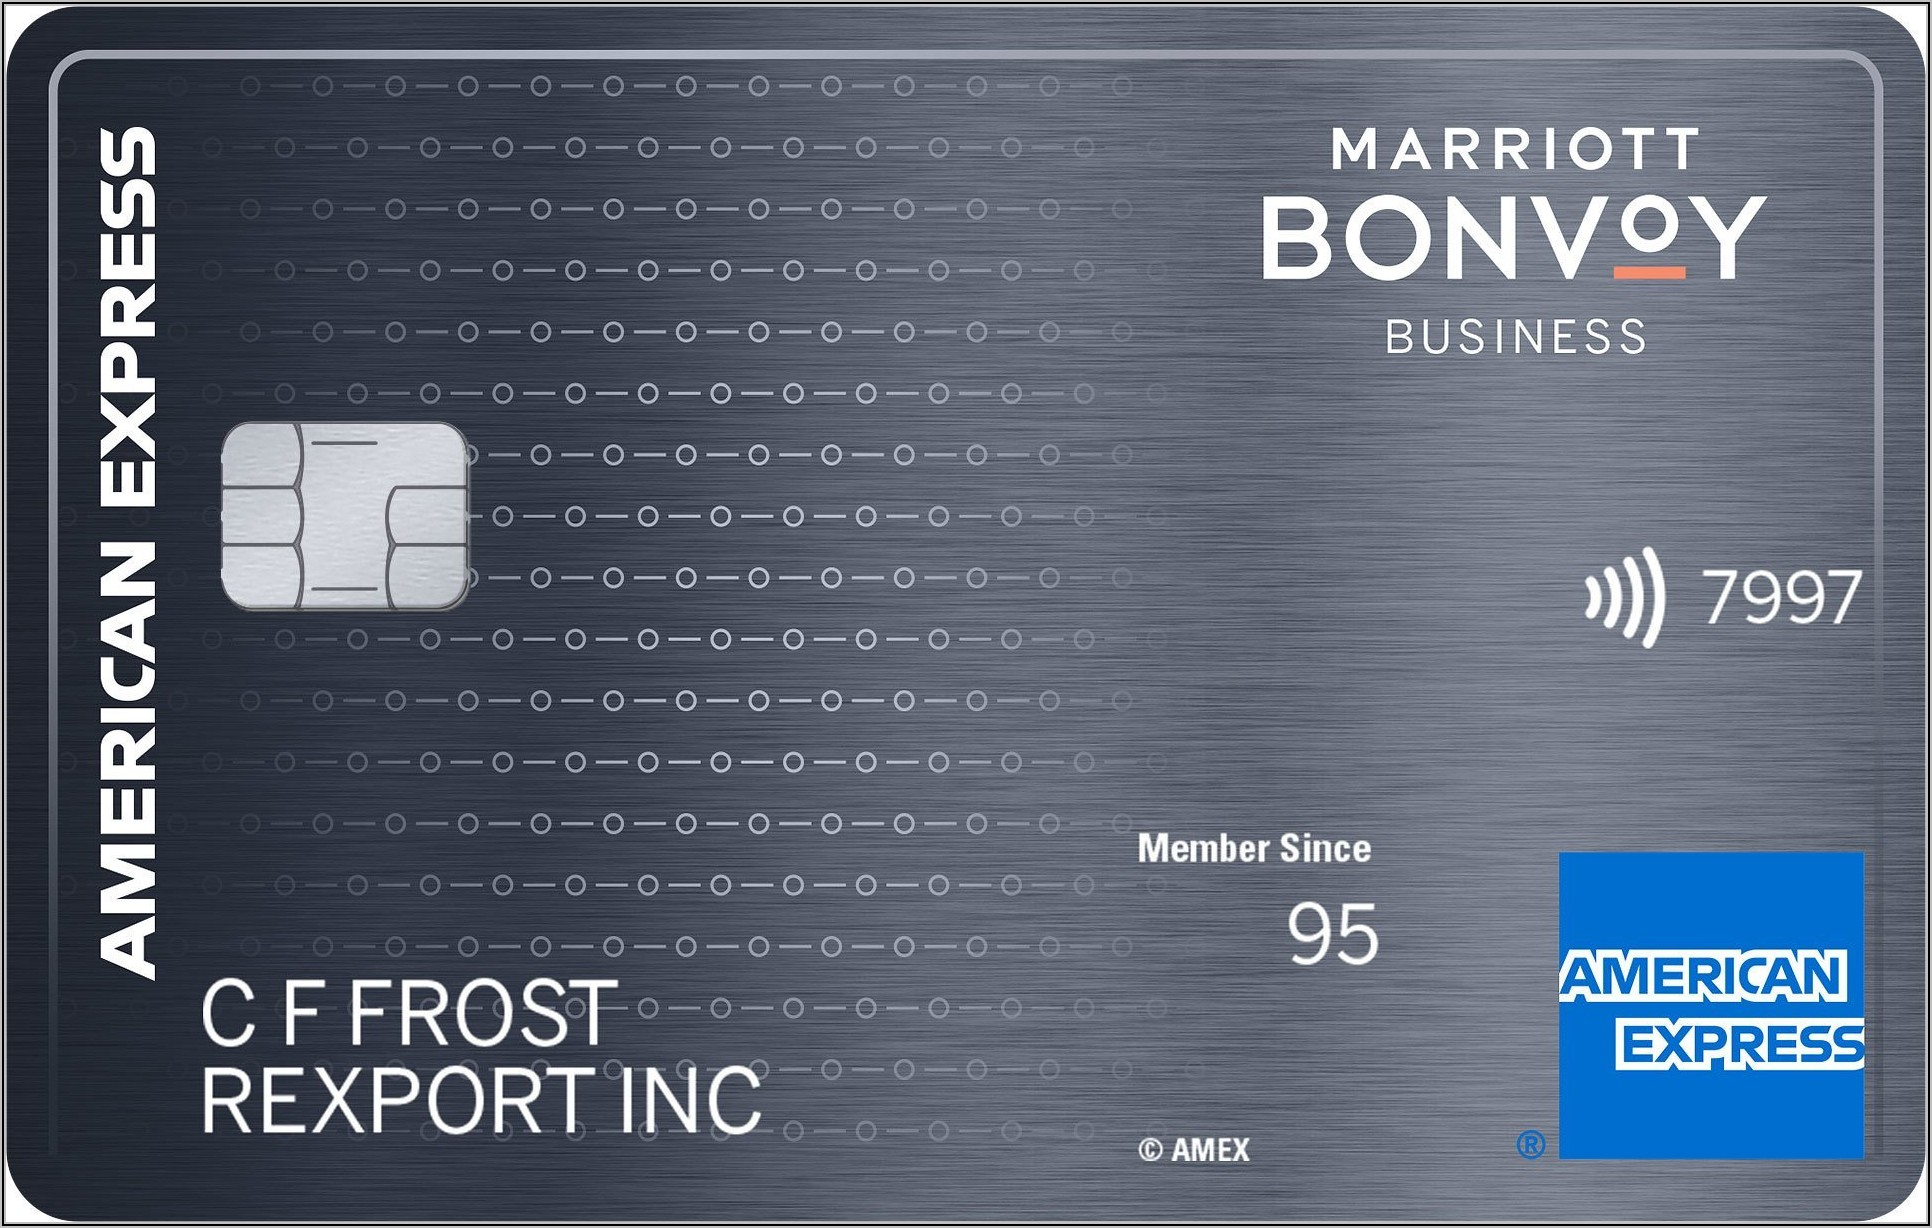 Chase Marriott Business Card Login